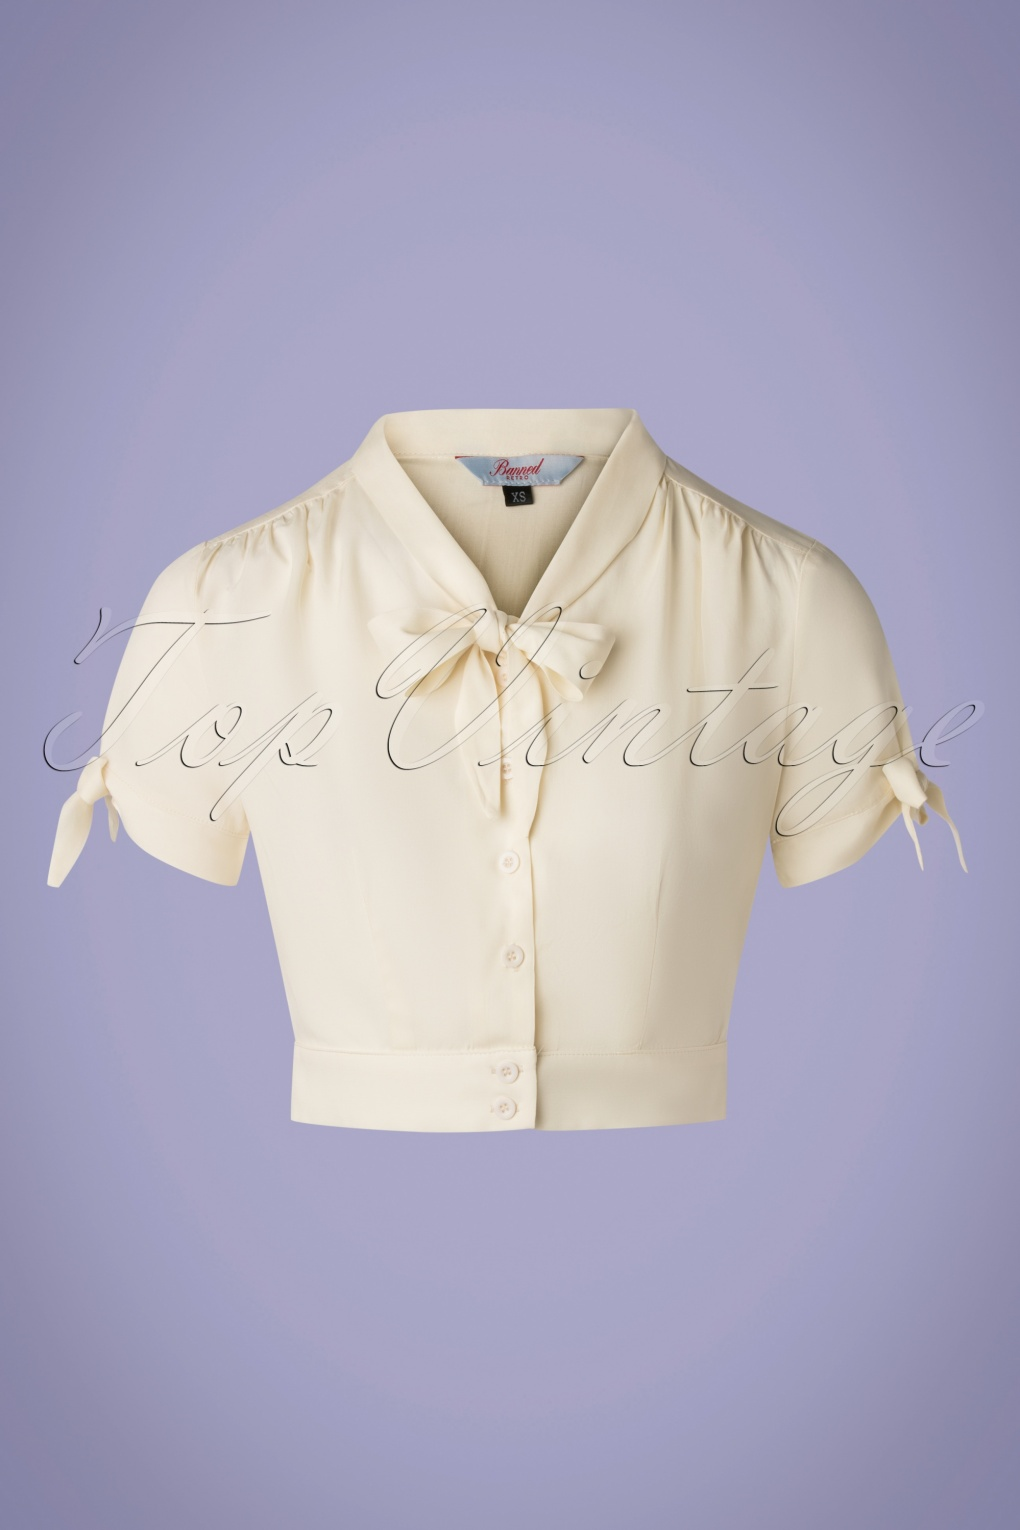 1950s Tops and Blouse Styles 50s Pussy Crop Top in Cream £19.51 AT vintagedancer.com